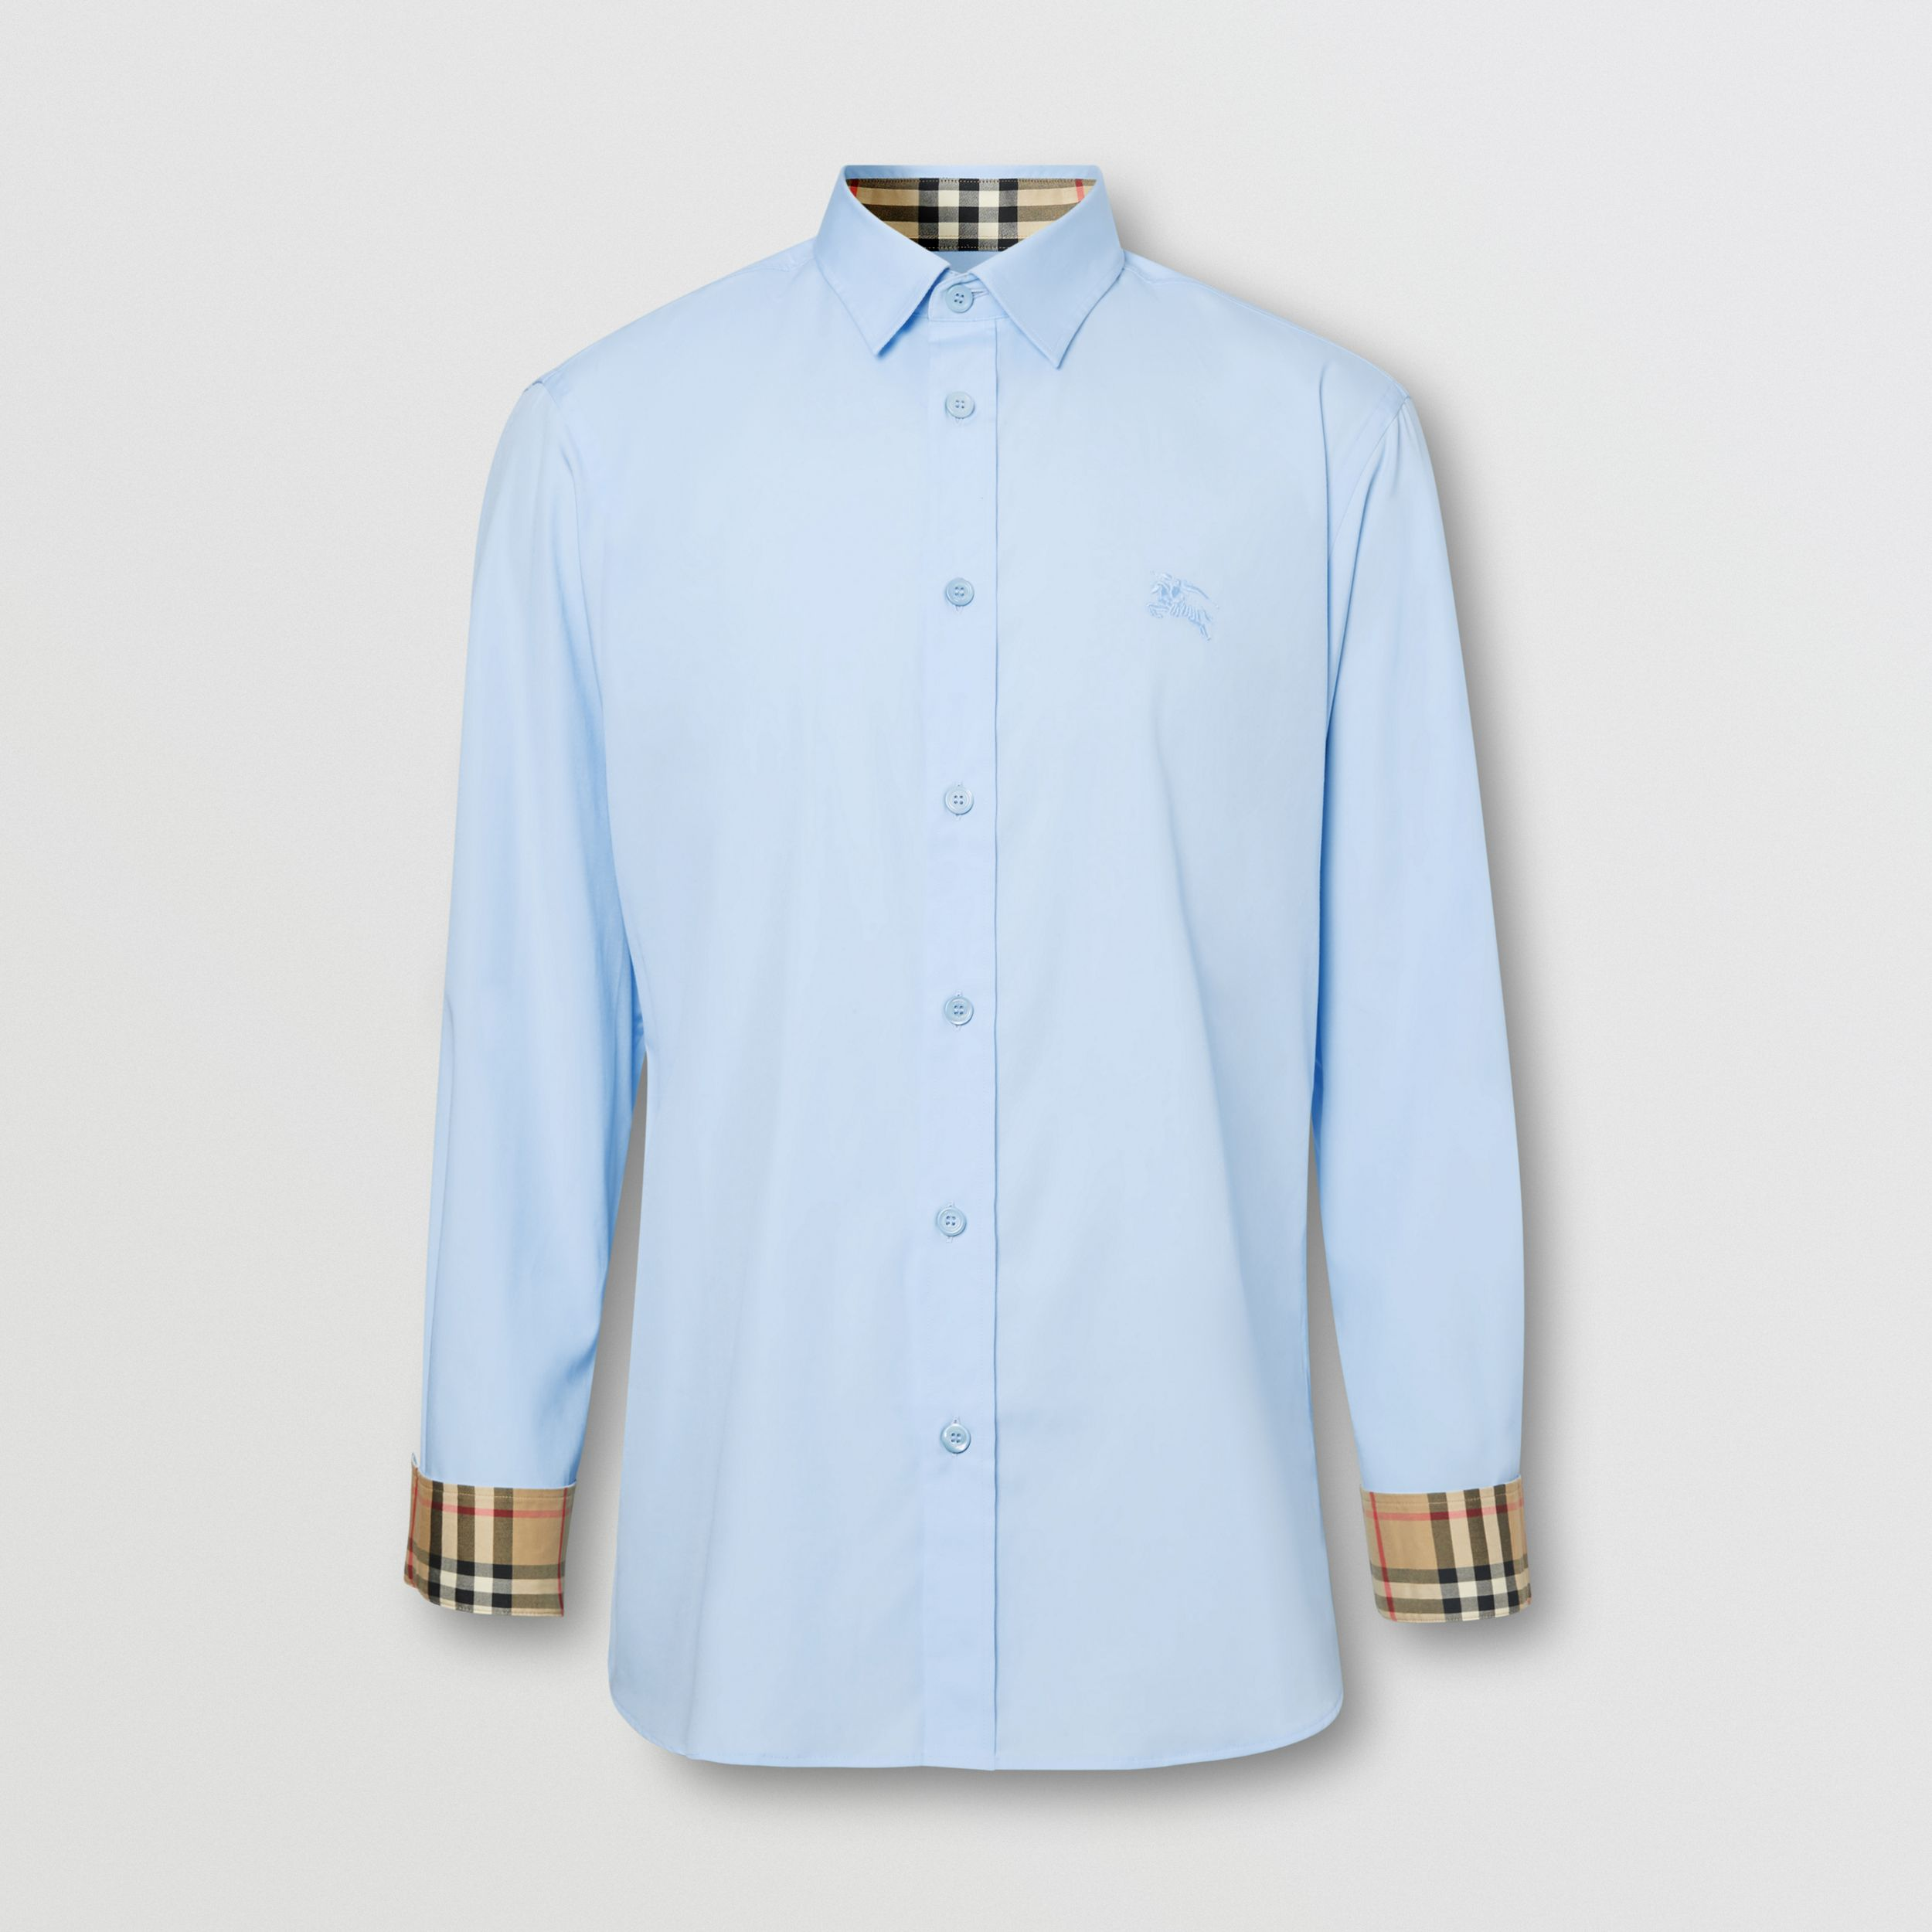 Classic Fit Embroidered EKD Cotton Oxford Shirt in Sky Blue - Men | Burberry - 4